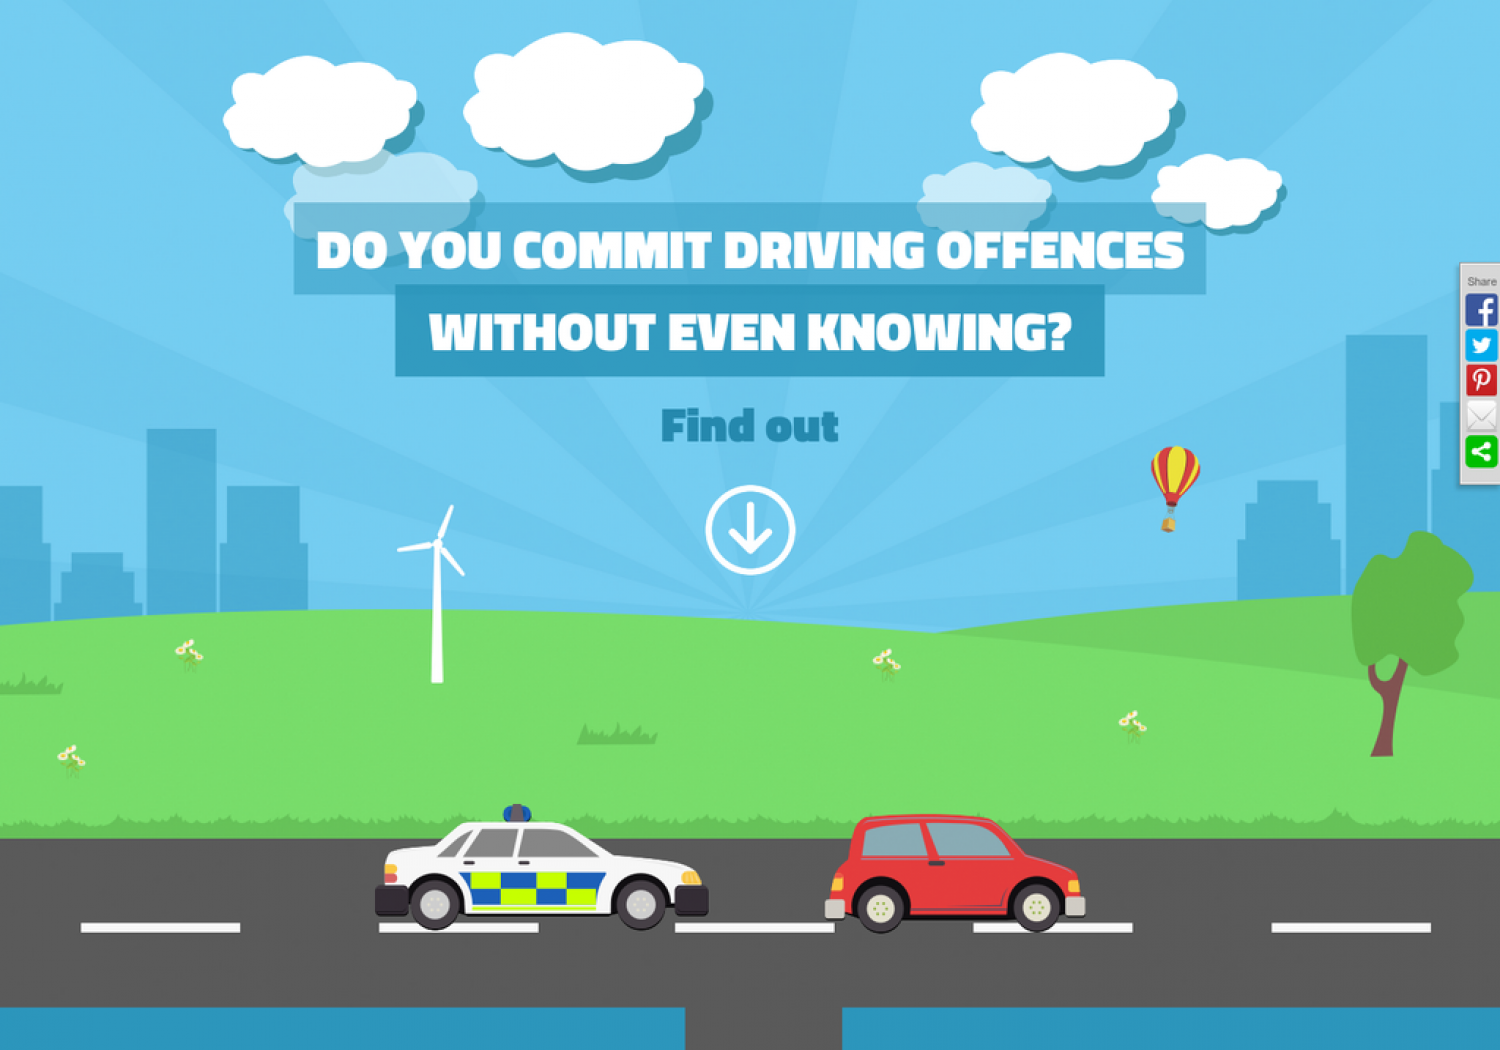 Do You Commit Driving Offences Without even Knowing? Infographic